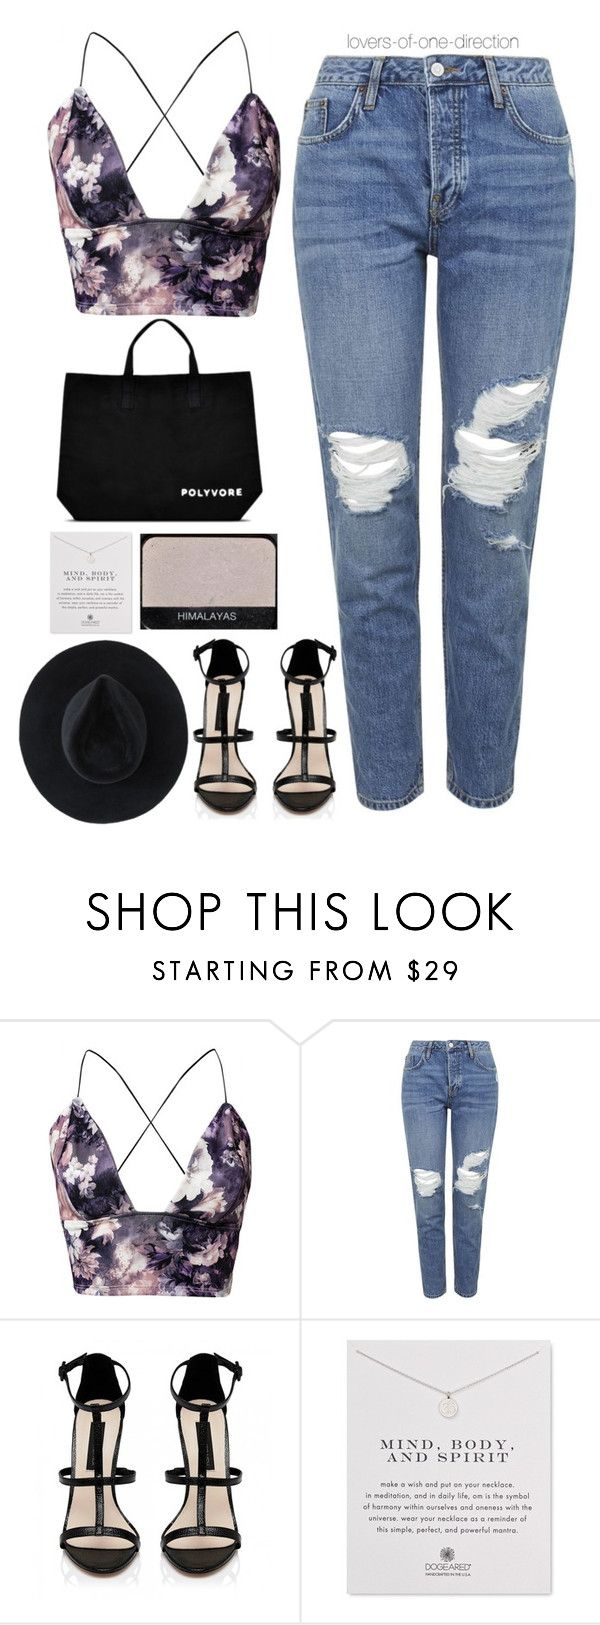 """#ContestOnTheGo #ContestEntry"" by lovers-of-one-direction ❤ liked on Polyvore featuring Oneness, Topshop, Forever New, Dogeared, NARS Cosmetics, Ryan Roche, contestentry, without1D and ContestOnTheGo"